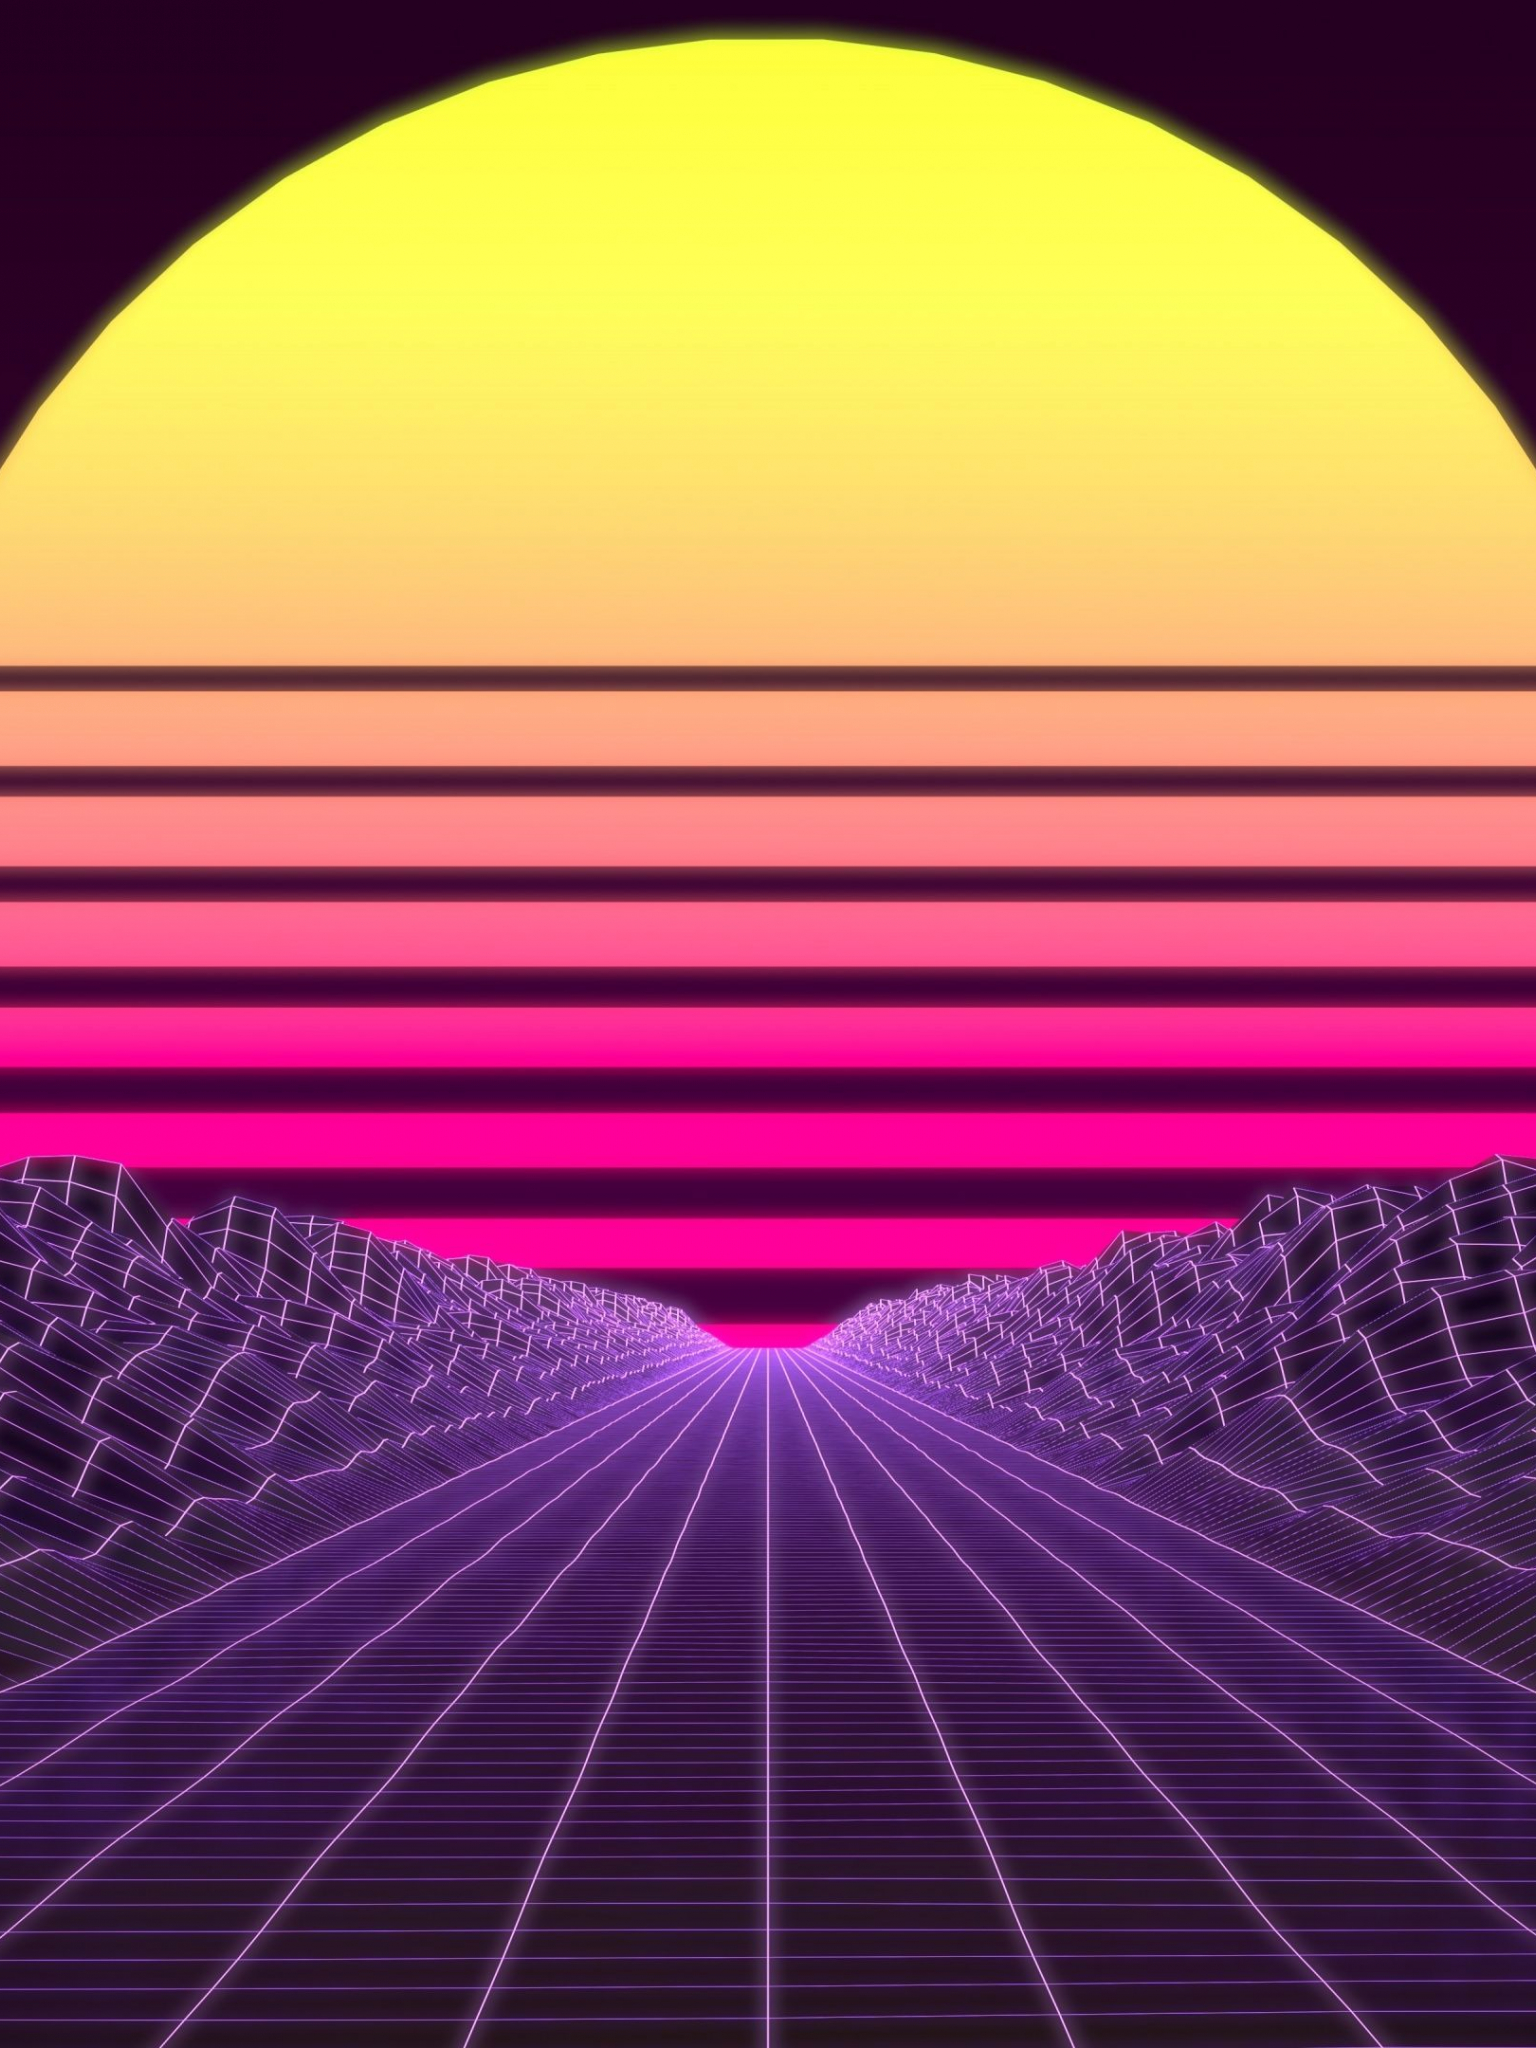 Free Download Synthwave Wallpapers Top Synthwave Backgrounds 5120x2160 For Your Desktop Mobile Tablet Explore 26 1980 Retro City 4k Wallpapers 1980 Retro City 4k Wallpapers Retro Aesthetic City Wallpapers 4k City Wallpaper